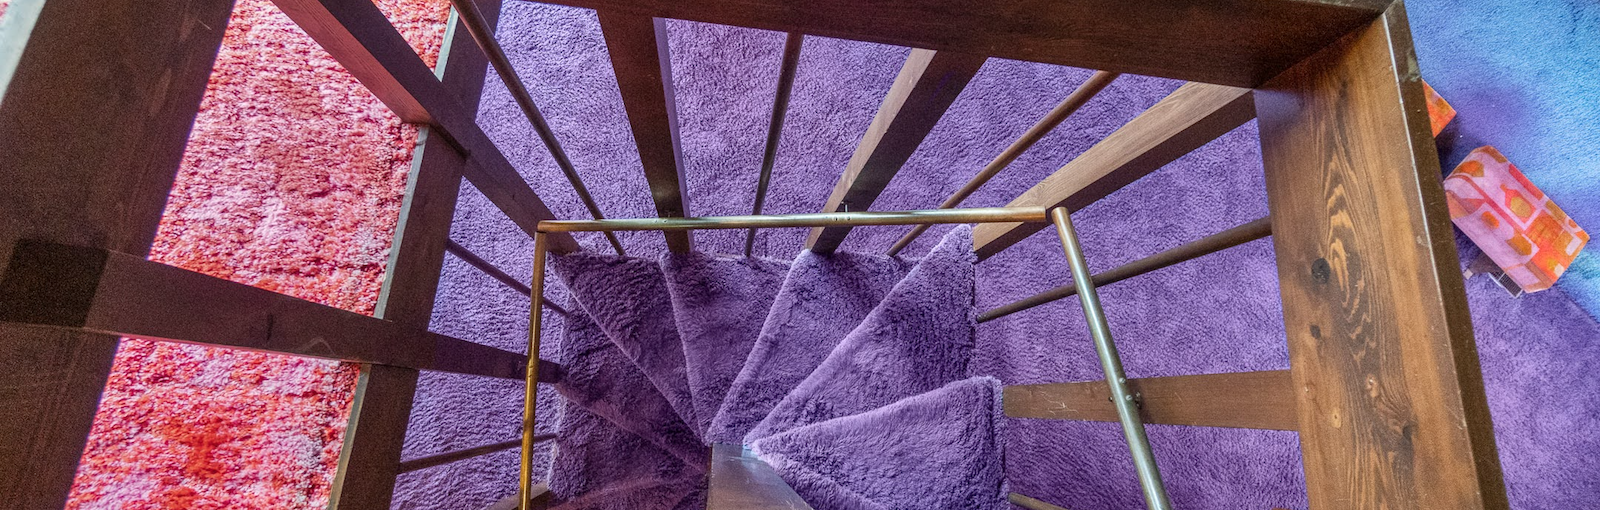 The psychedelic staircase of a viral 1970s time capsule home in Fort Wayne that's going from shag to chic.